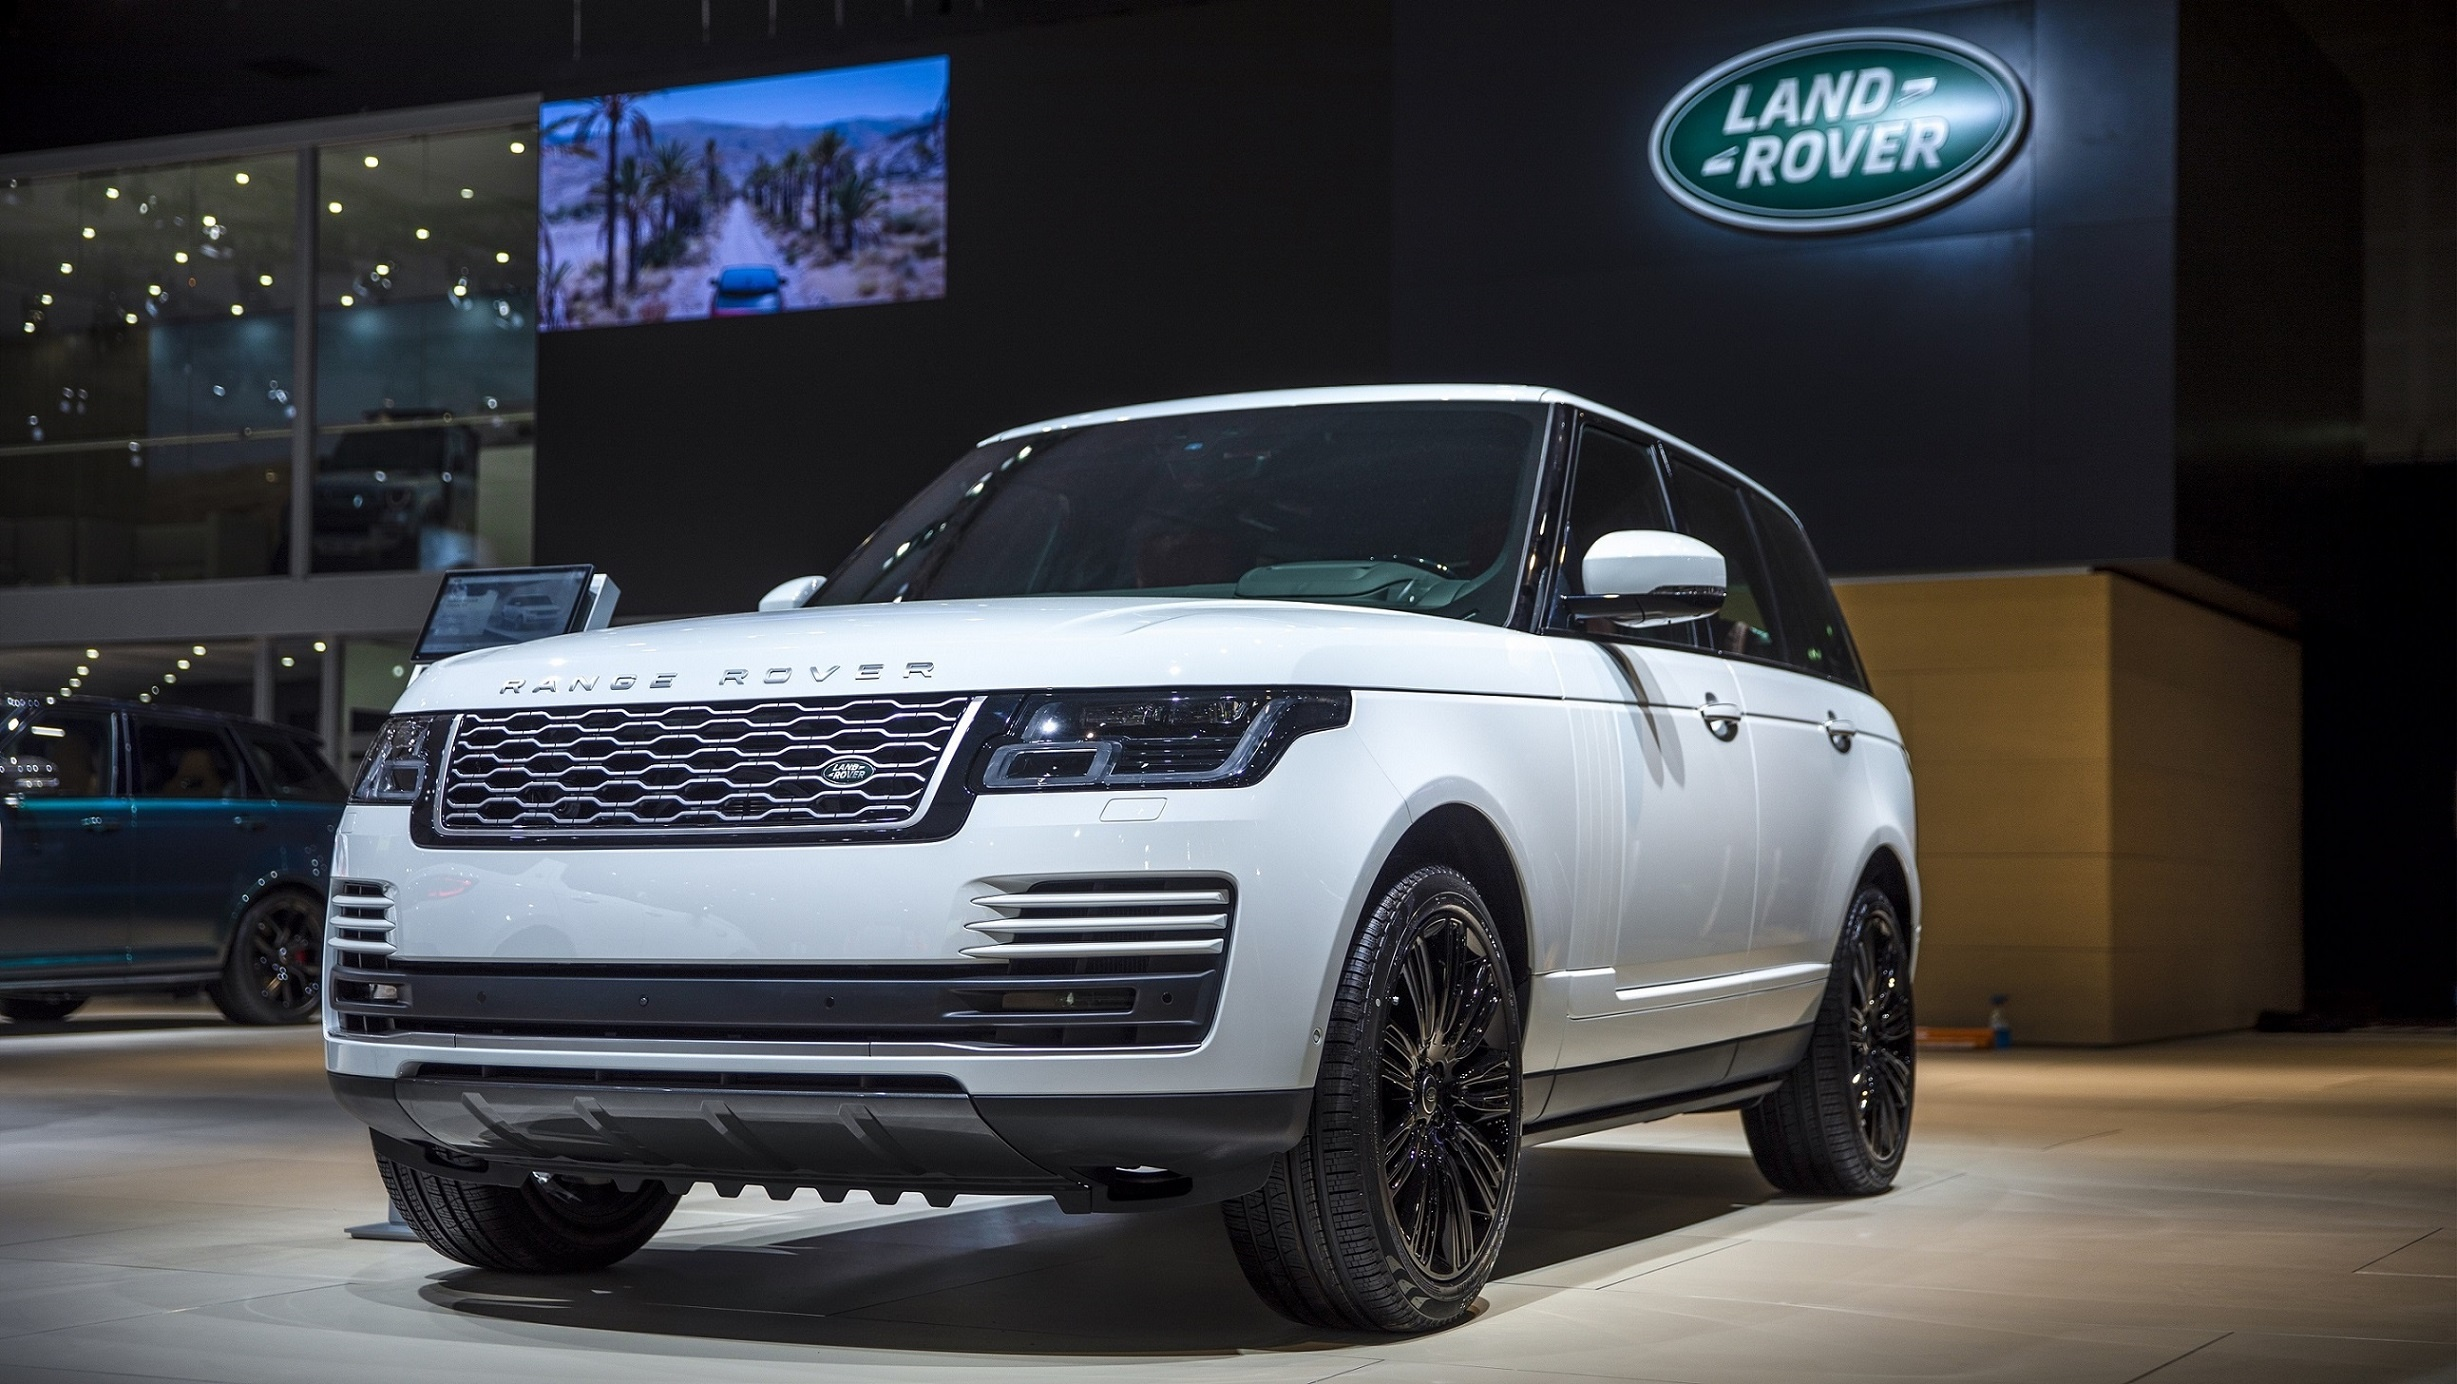 Land Rover Debuts New Range Rover at Dubai International Motor Show